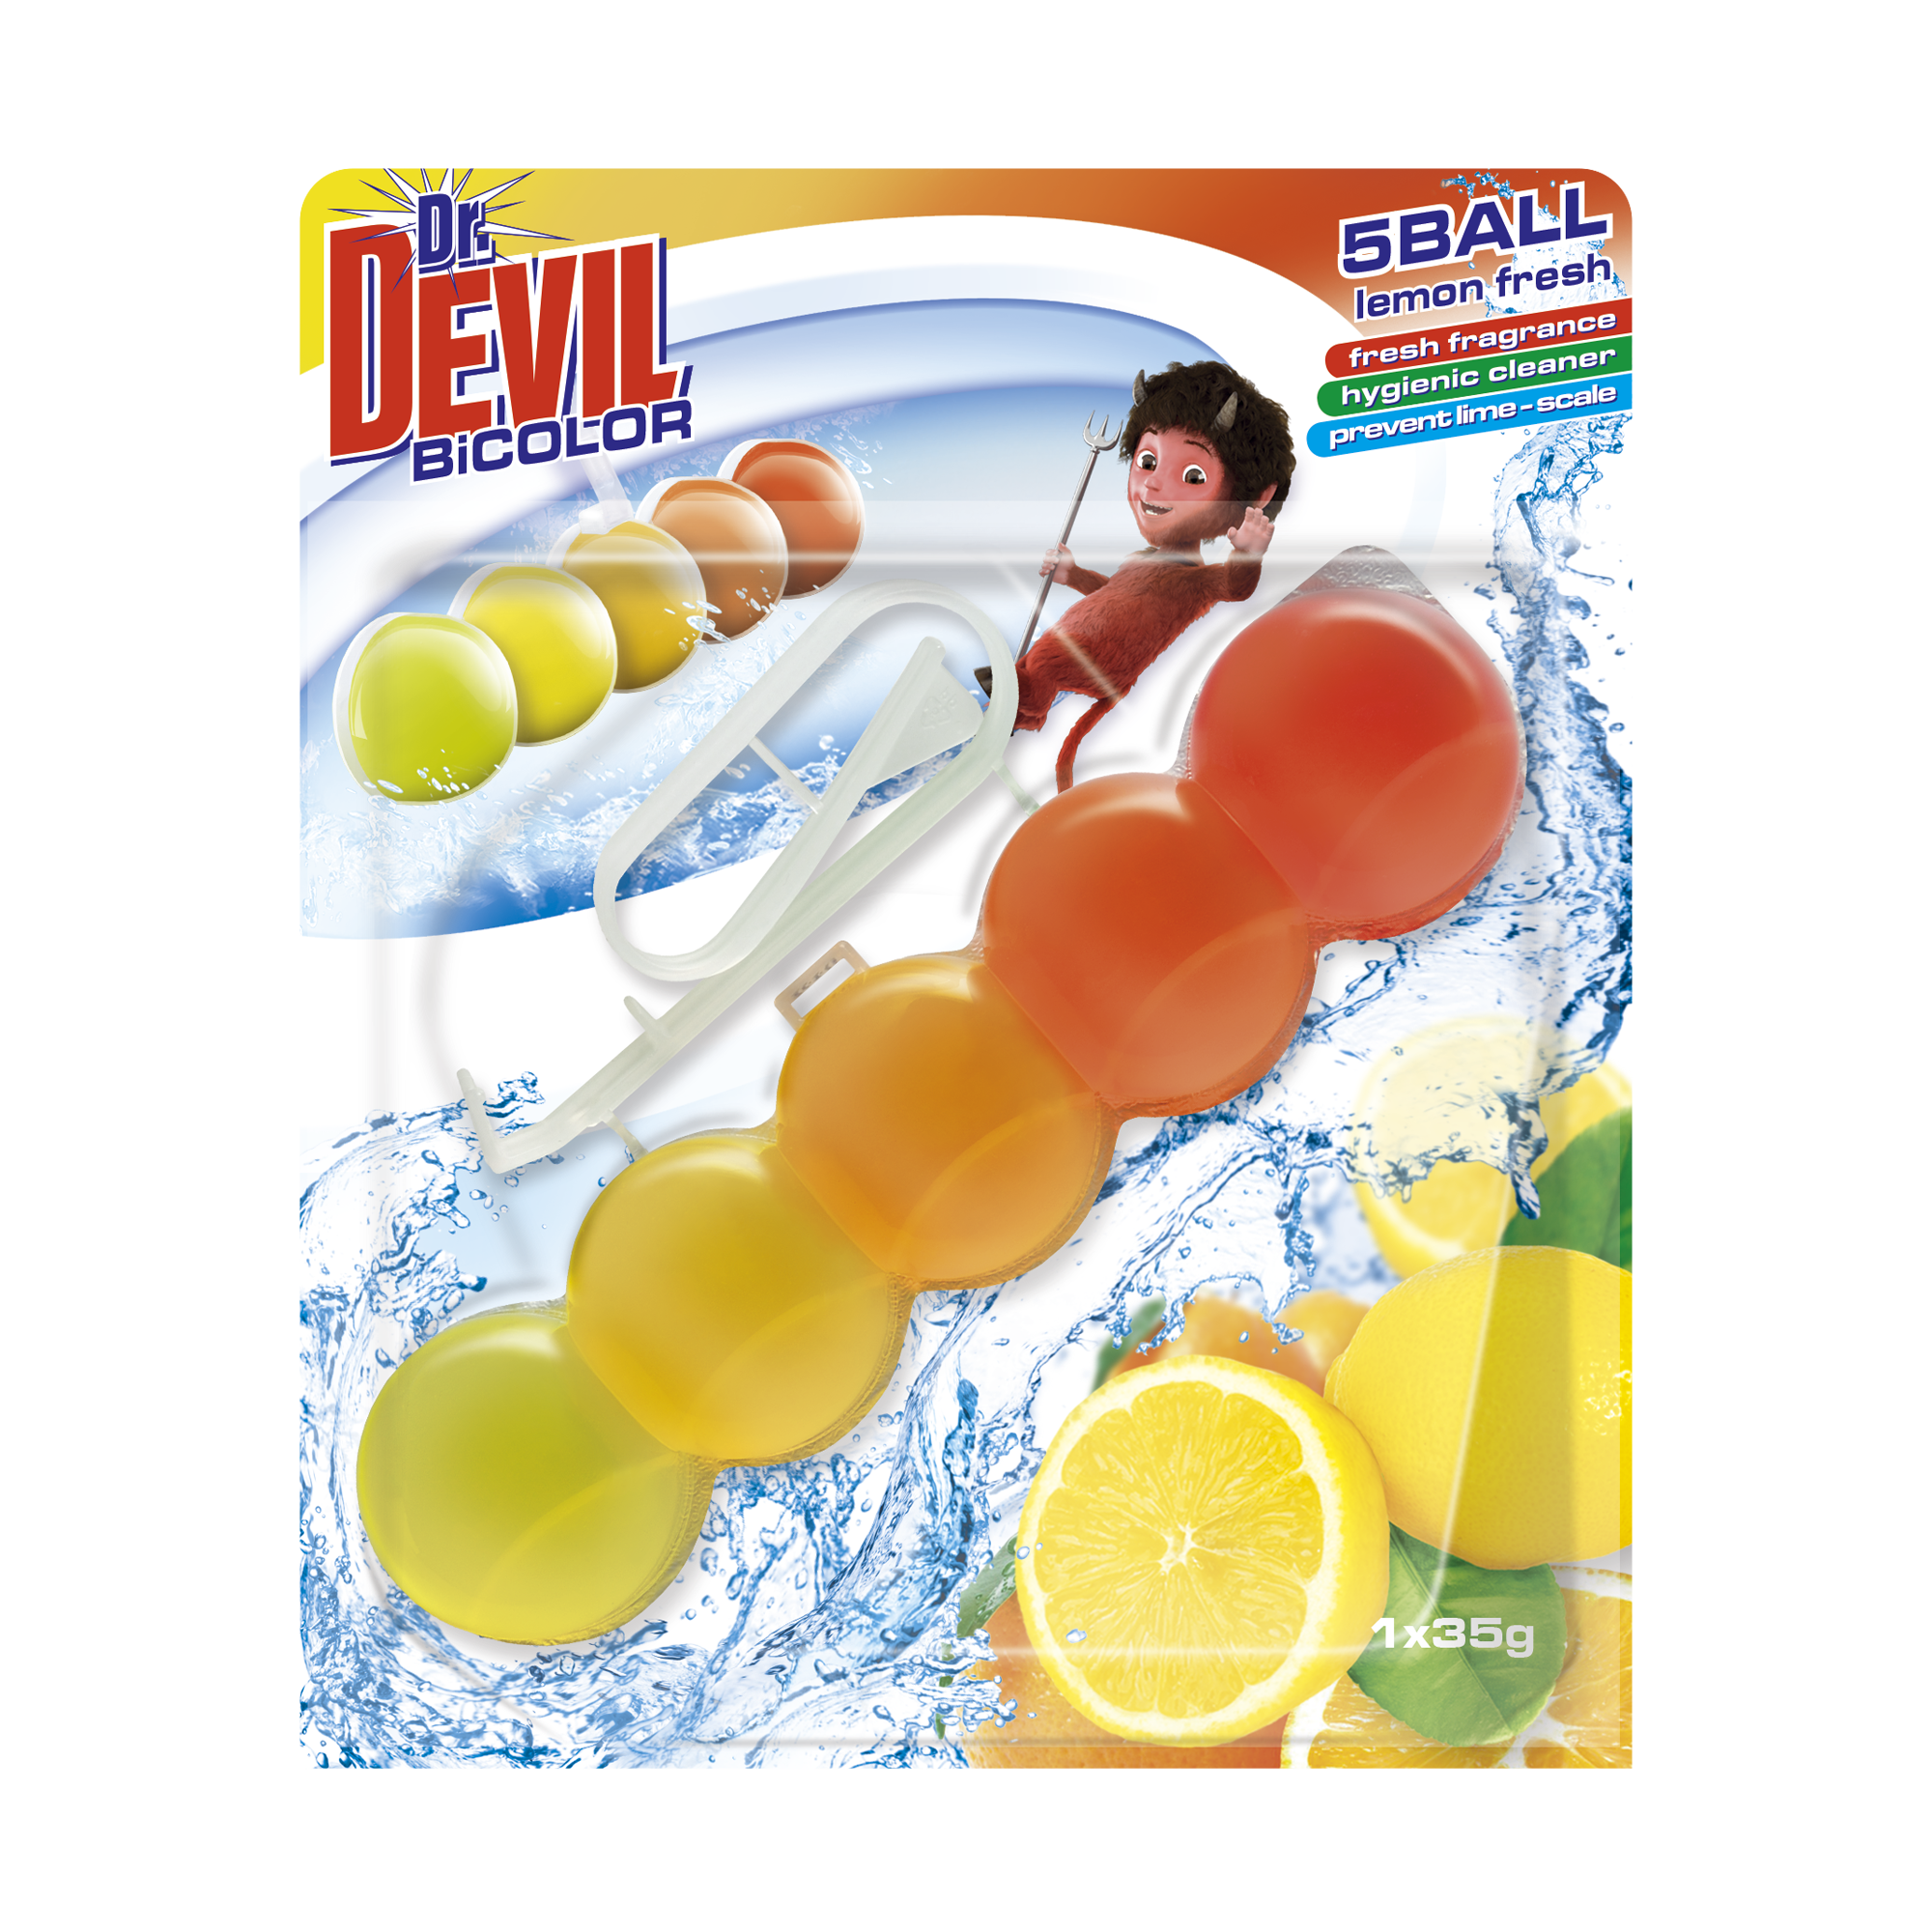 Dr. Devil WC BiCOLOR 5BALL Lemon Fresh